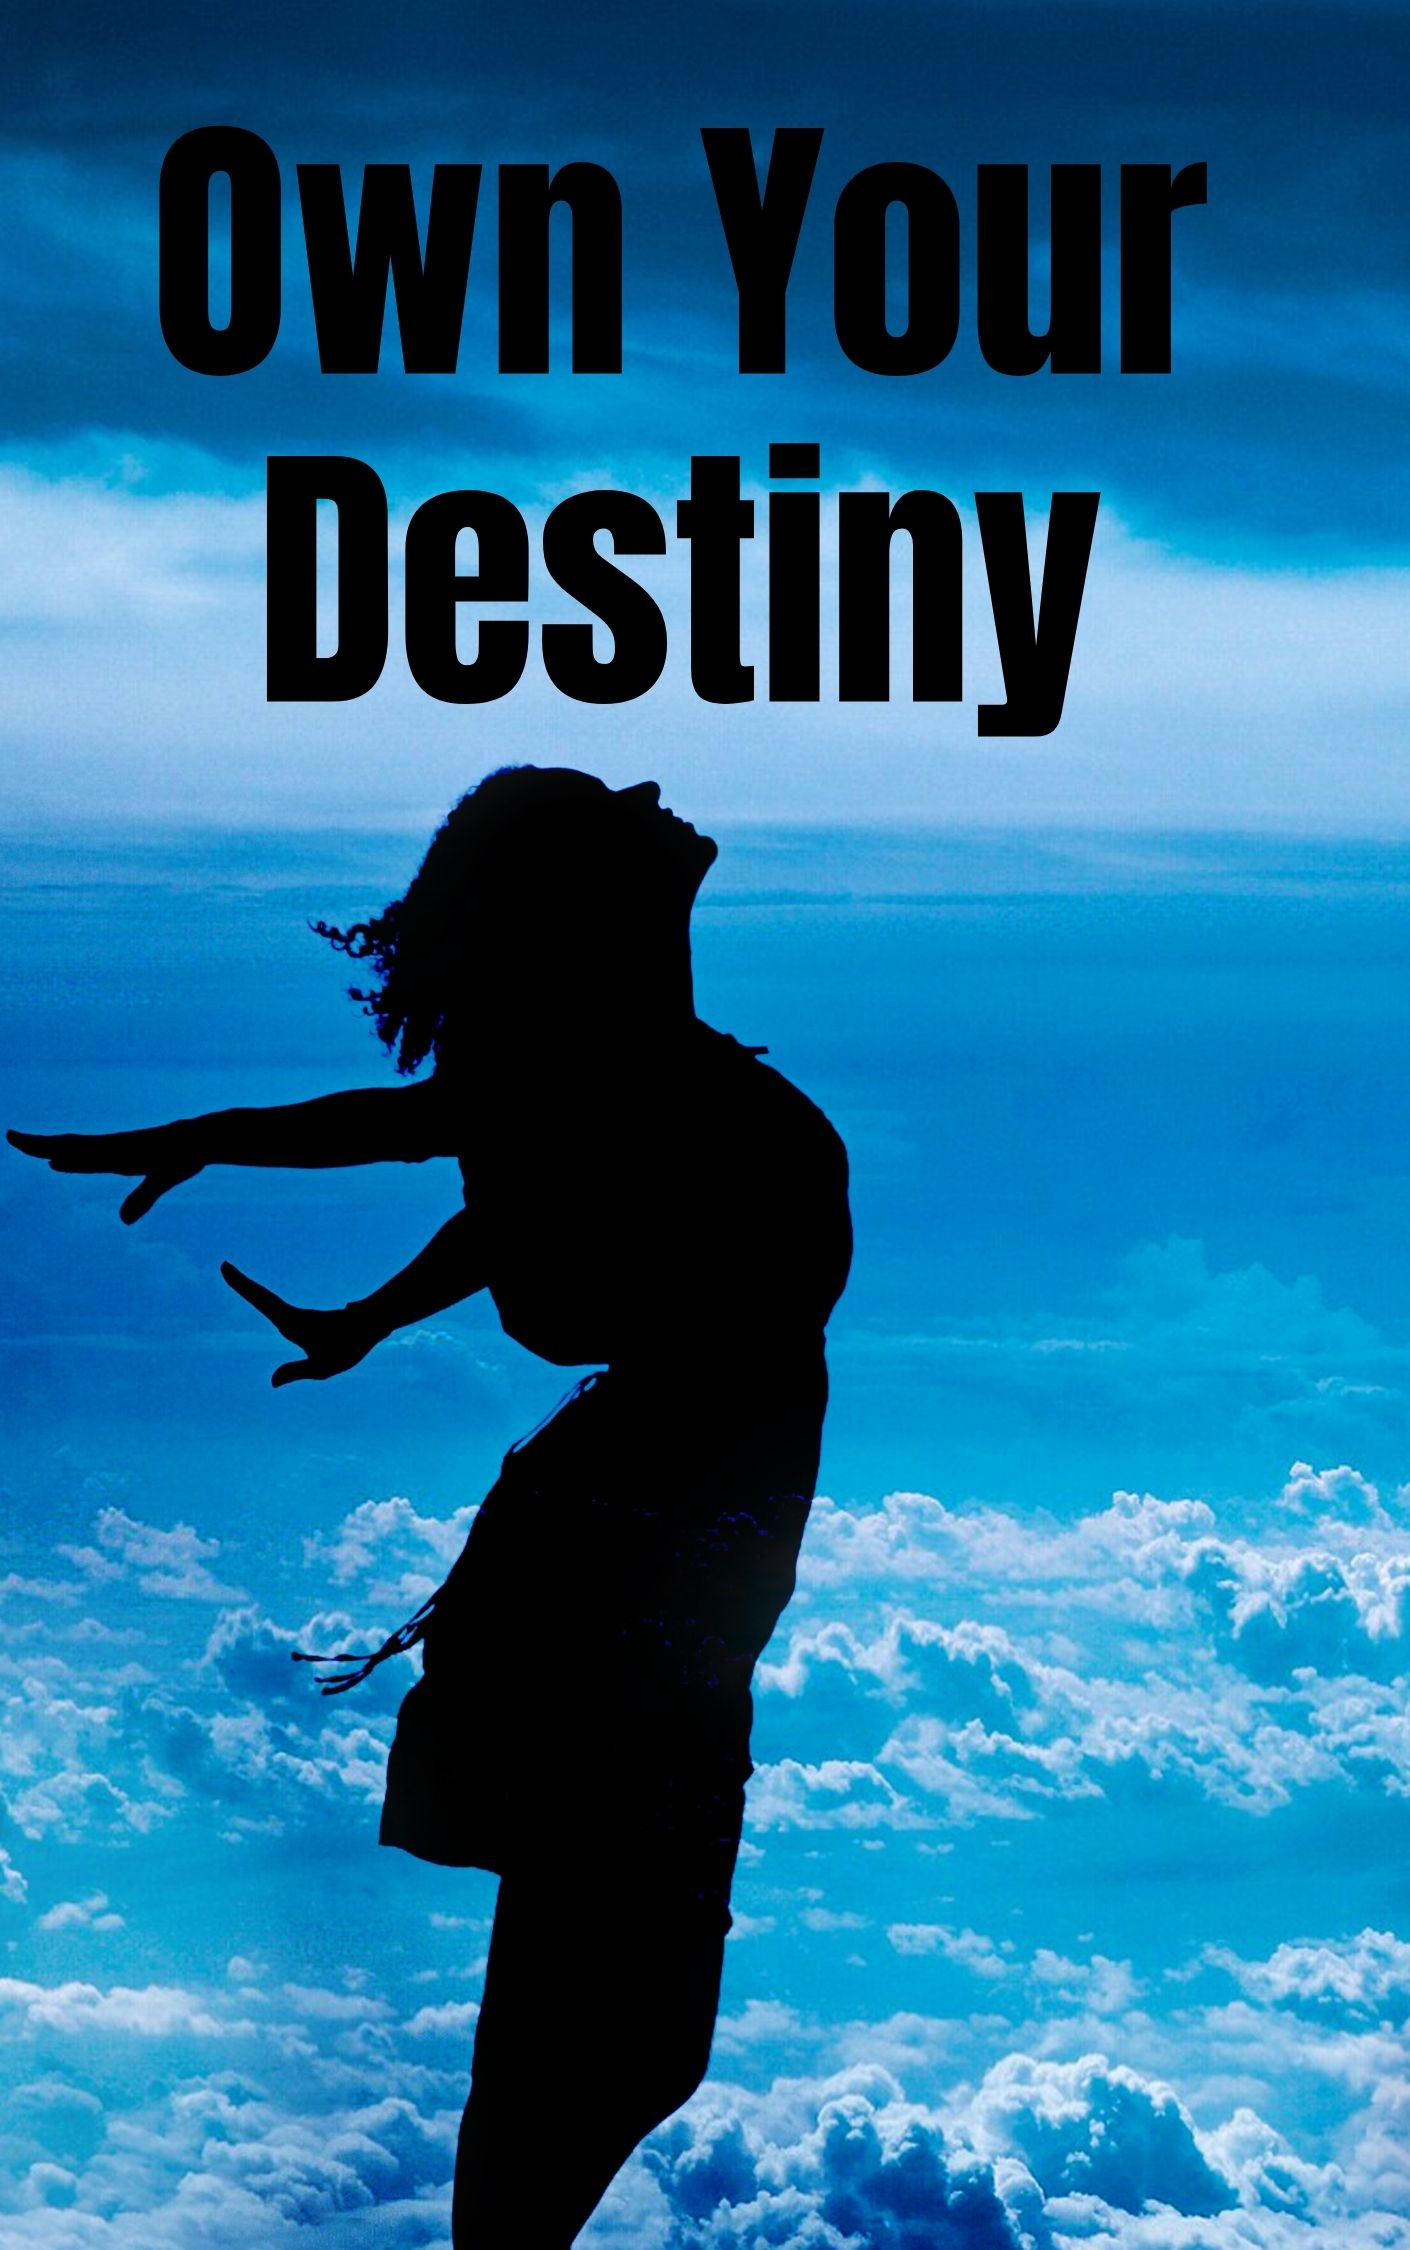 Own your destiny cover